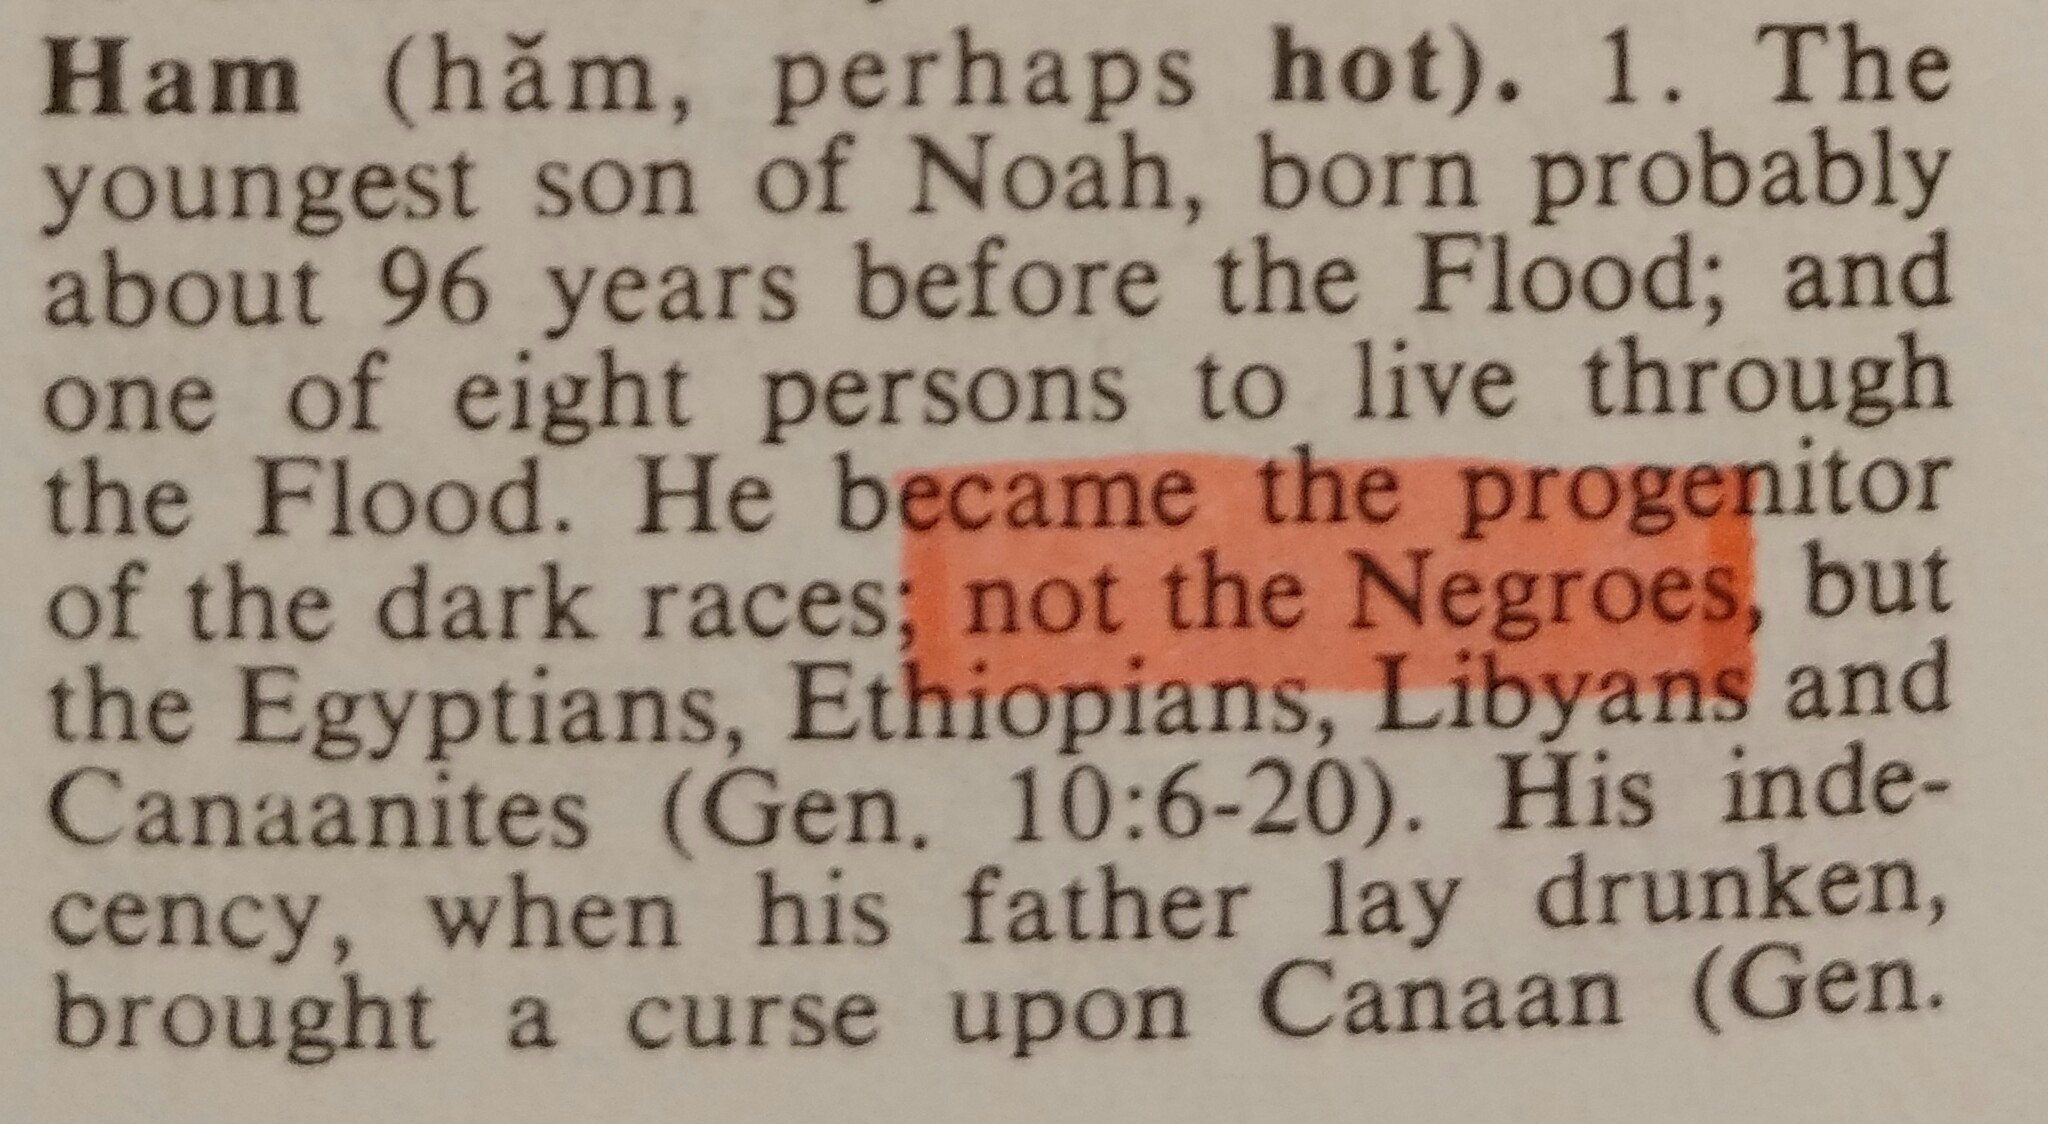 Zondervan Bible Dictionary: Negroes Are Not From The Line of Ham